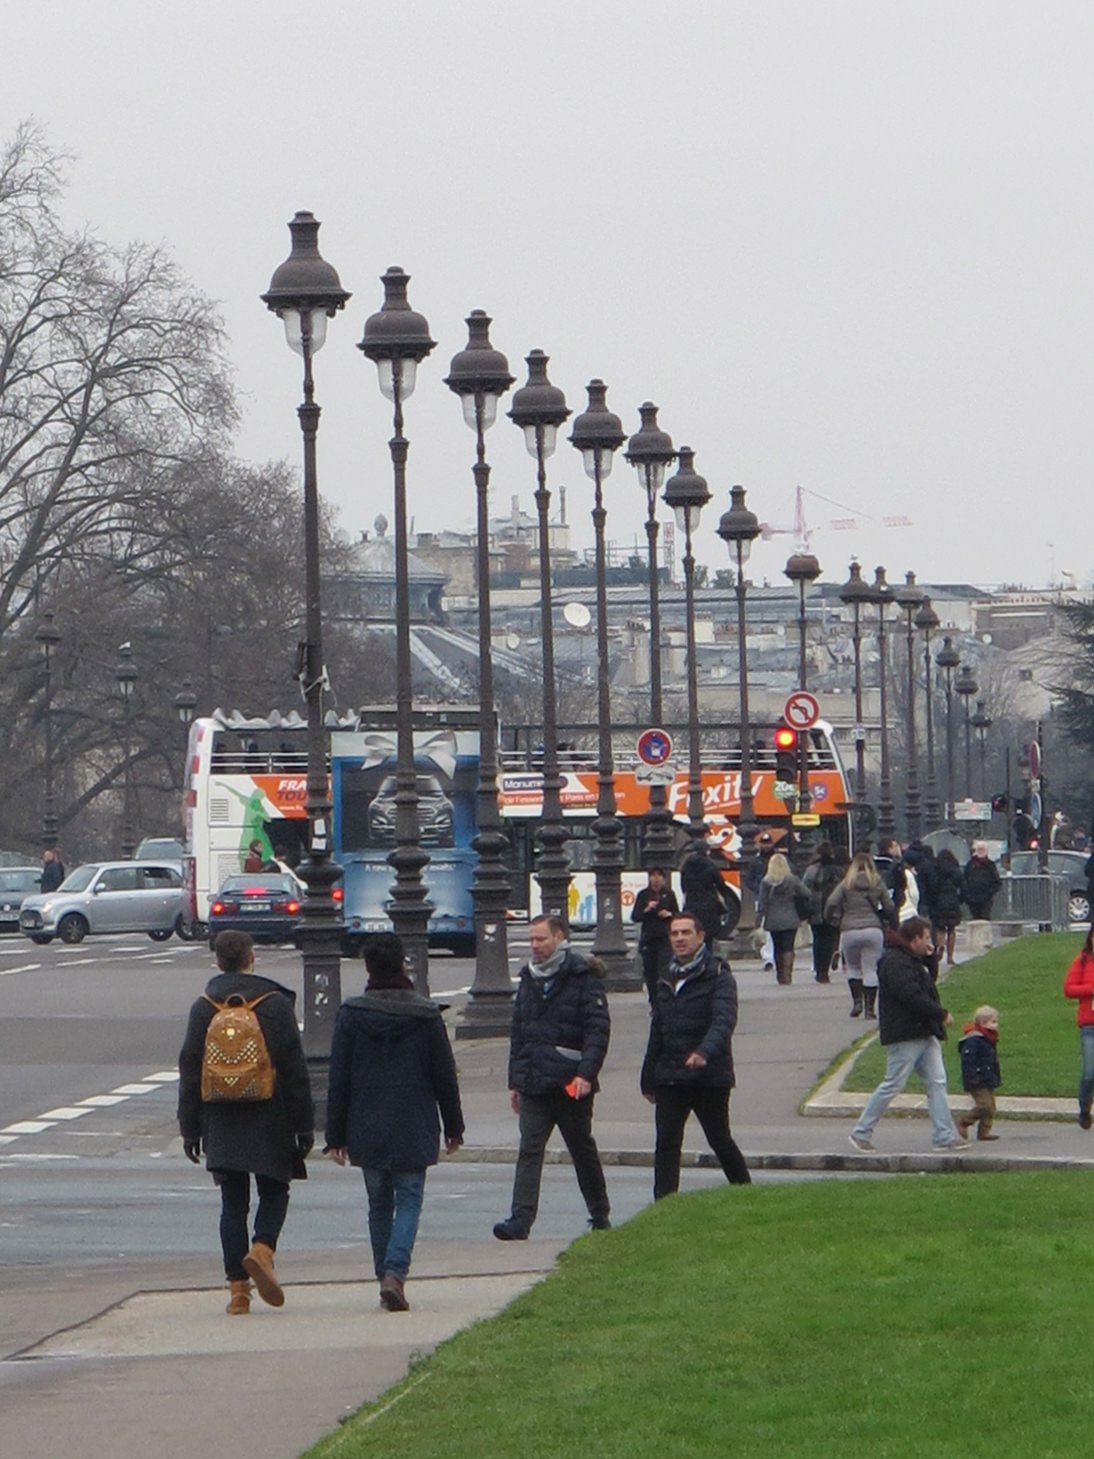 Paris, France, travel, lamp posts